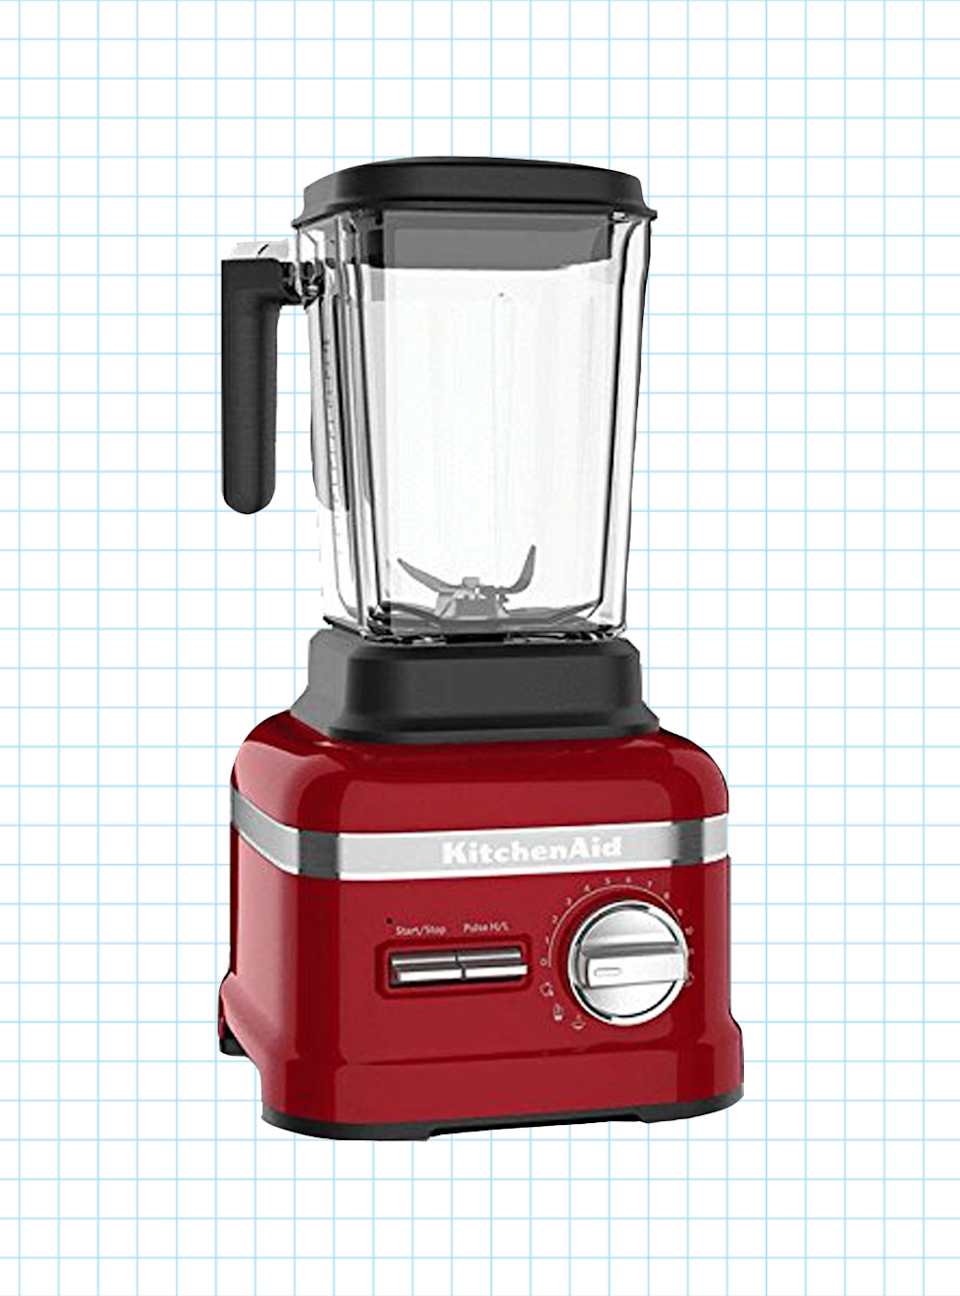 "<p><strong>KitchenAid</strong></p><p>amazon.com</p><p><strong>$449.95</strong></p><p><a href=""https://www.amazon.com/d/Countertop-Blenders/KitchenAid-KSB8270CA-Thermal-Control-Blender/B06XSHRWX5?tag=syn-yahoo-20&ascsubtag=%5Bartid%7C10055.g.4864%5Bsrc%7Cyahoo-us"" rel=""nofollow noopener"" target=""_blank"" data-ylk=""slk:Shop Now"" class=""link rapid-noclick-resp"">Shop Now</a></p><p>KitchenAid's sleek and beautifully-designed Pro Line blender is a true dream appliance. Yes it's pricey, but this <strong>h</strong><strong>igh-performance model excelled at every test</strong> and comes with an impressive 10-year warranty. The controls feature an on/off switch, pulse switch, and dial that can be set from zero to 11- plus pre-programmed settings for soup, smoothies, and juice. The blades, jar and lid and removable handle grip are all dishwasher safe.</p><p><strong>Cons</strong>: Even more pricey than the benchmark Vitamix. </p>"